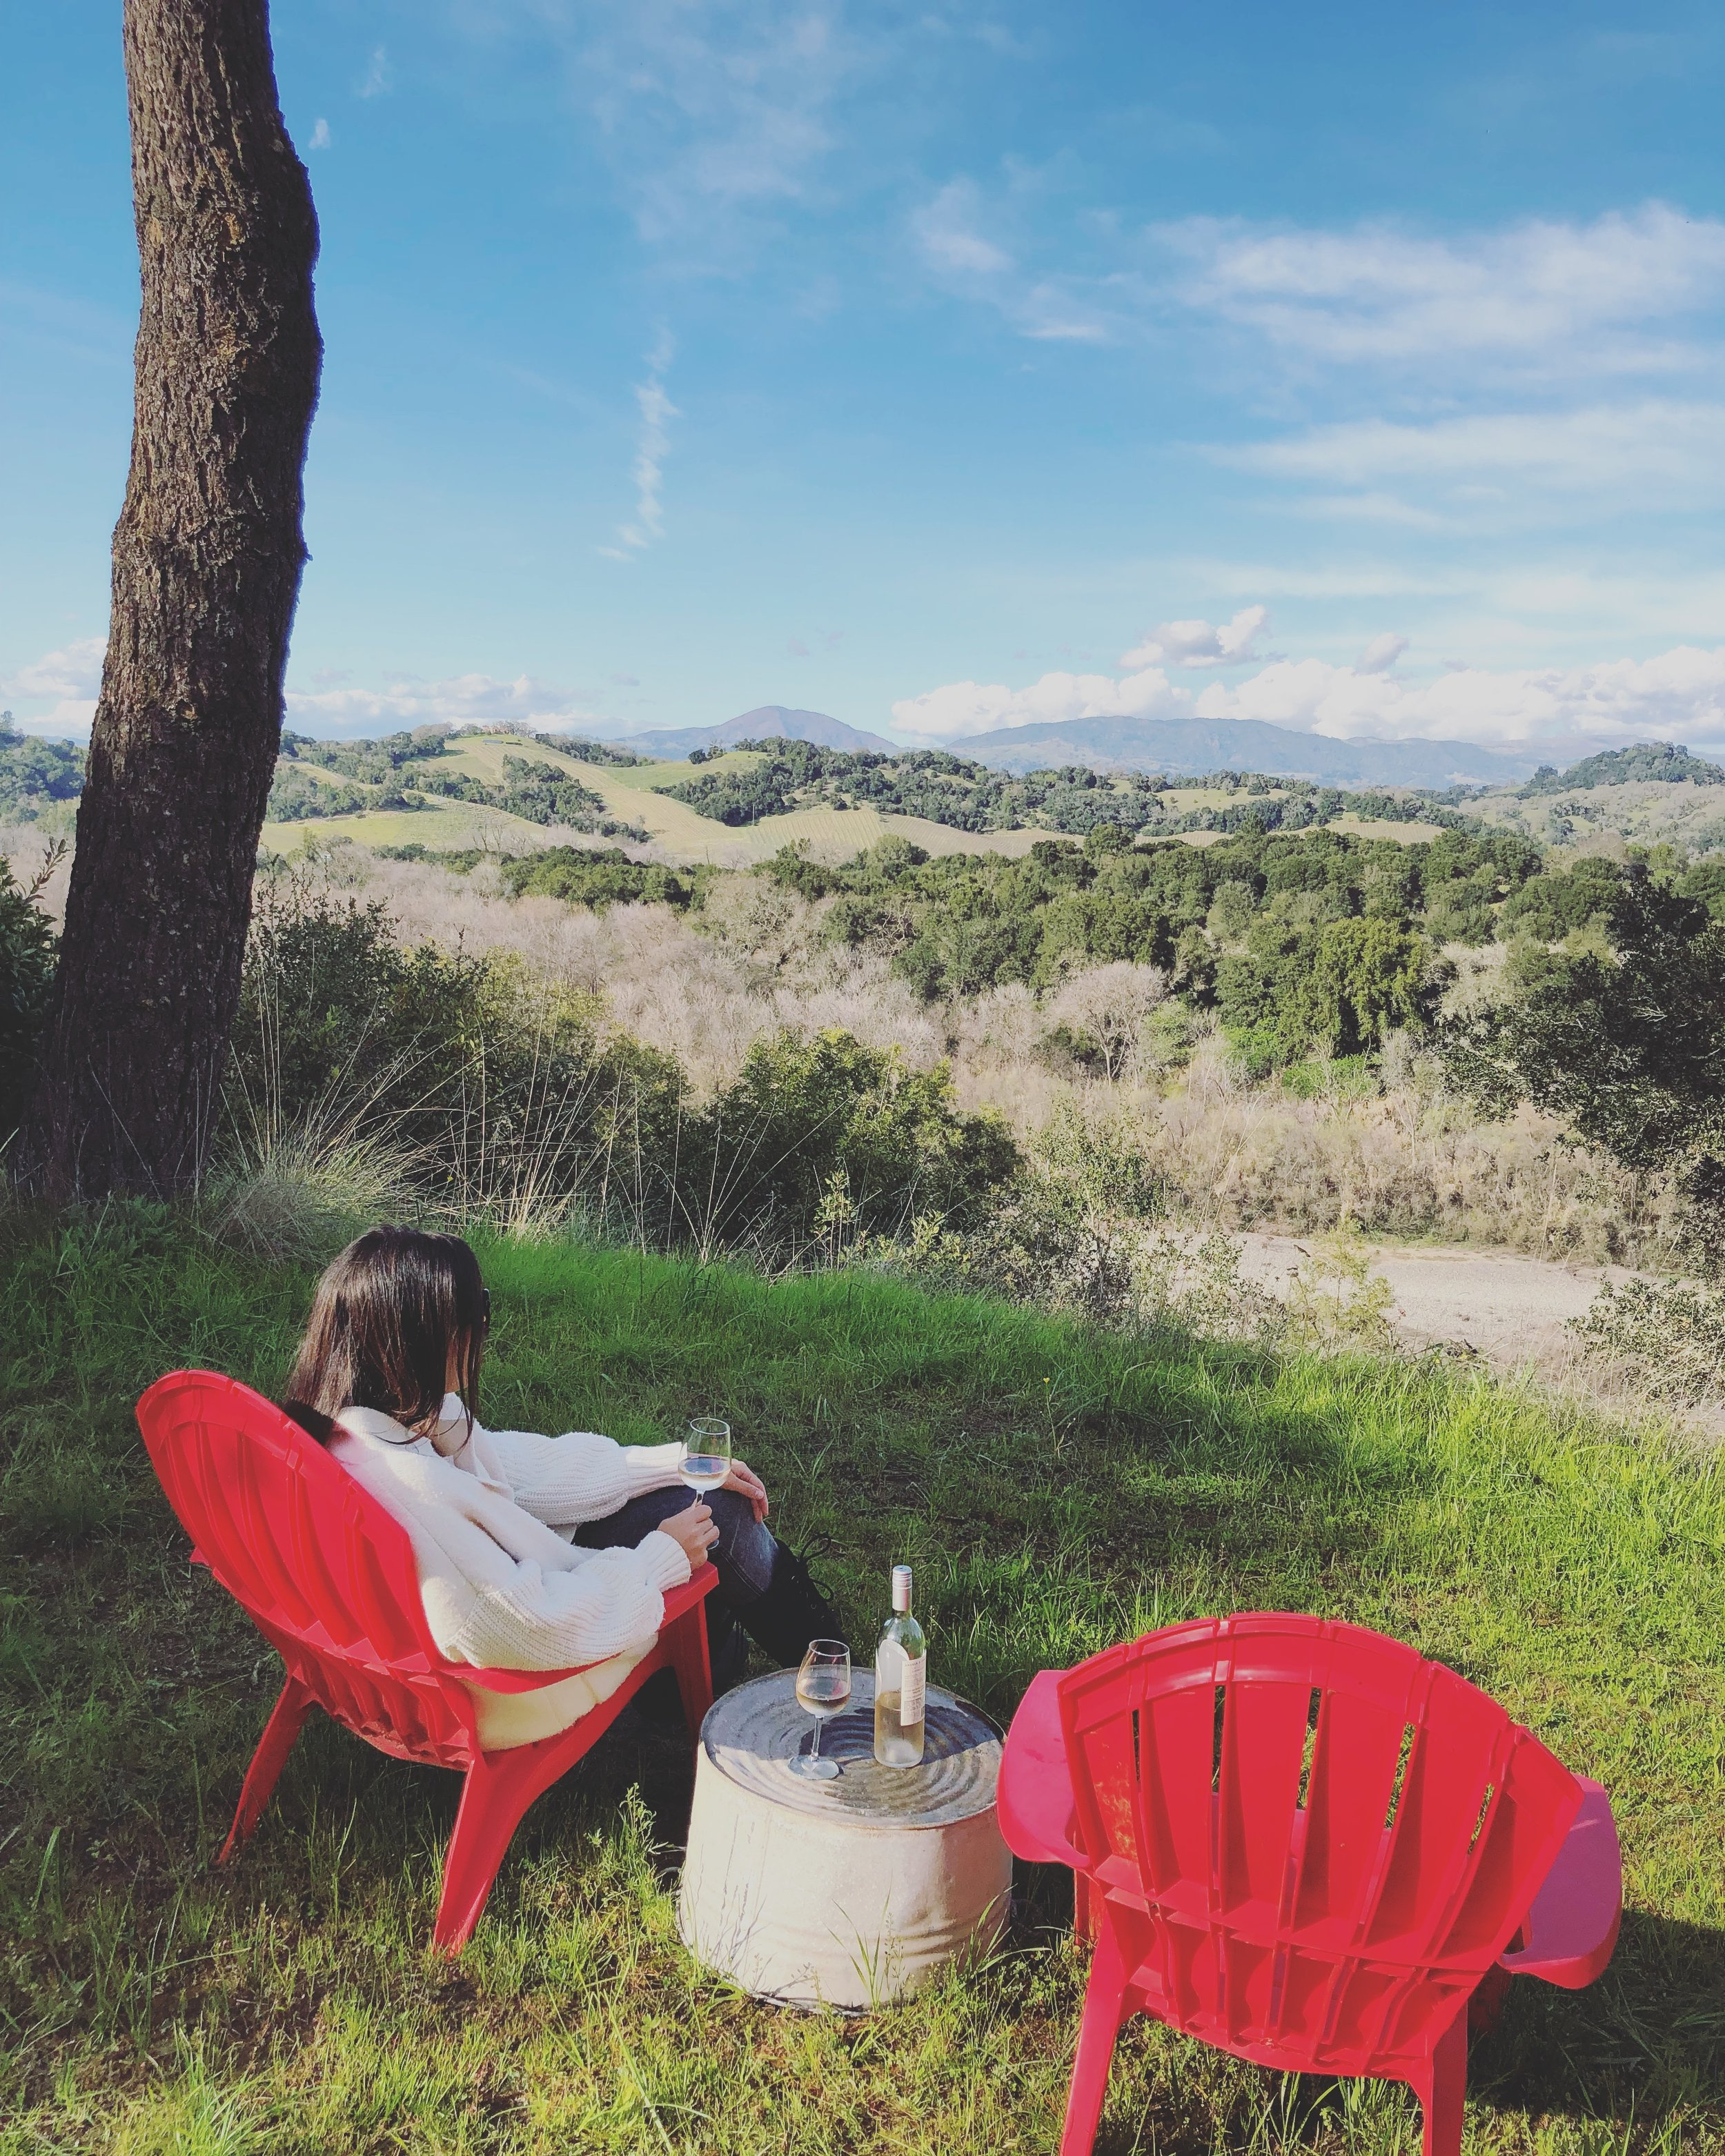 Beautiful views (and rosé !) from the backyard of our Airbnb